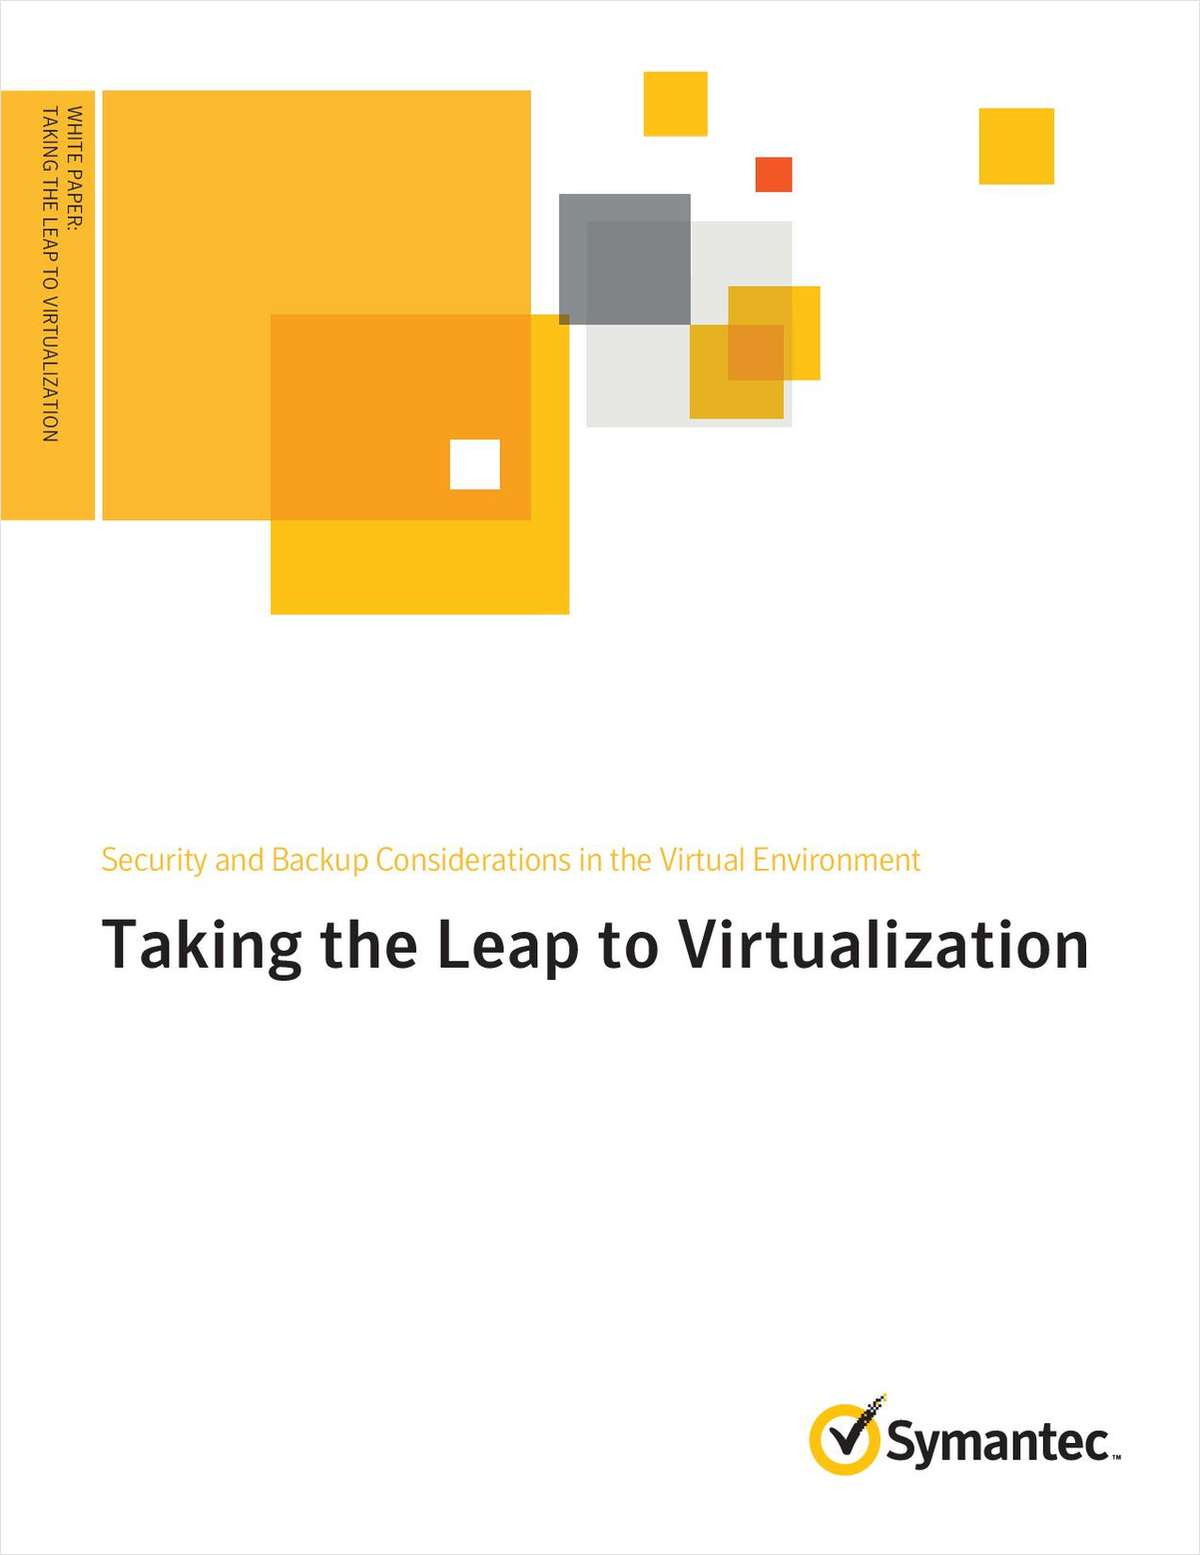 Taking the Leap to Virtualization